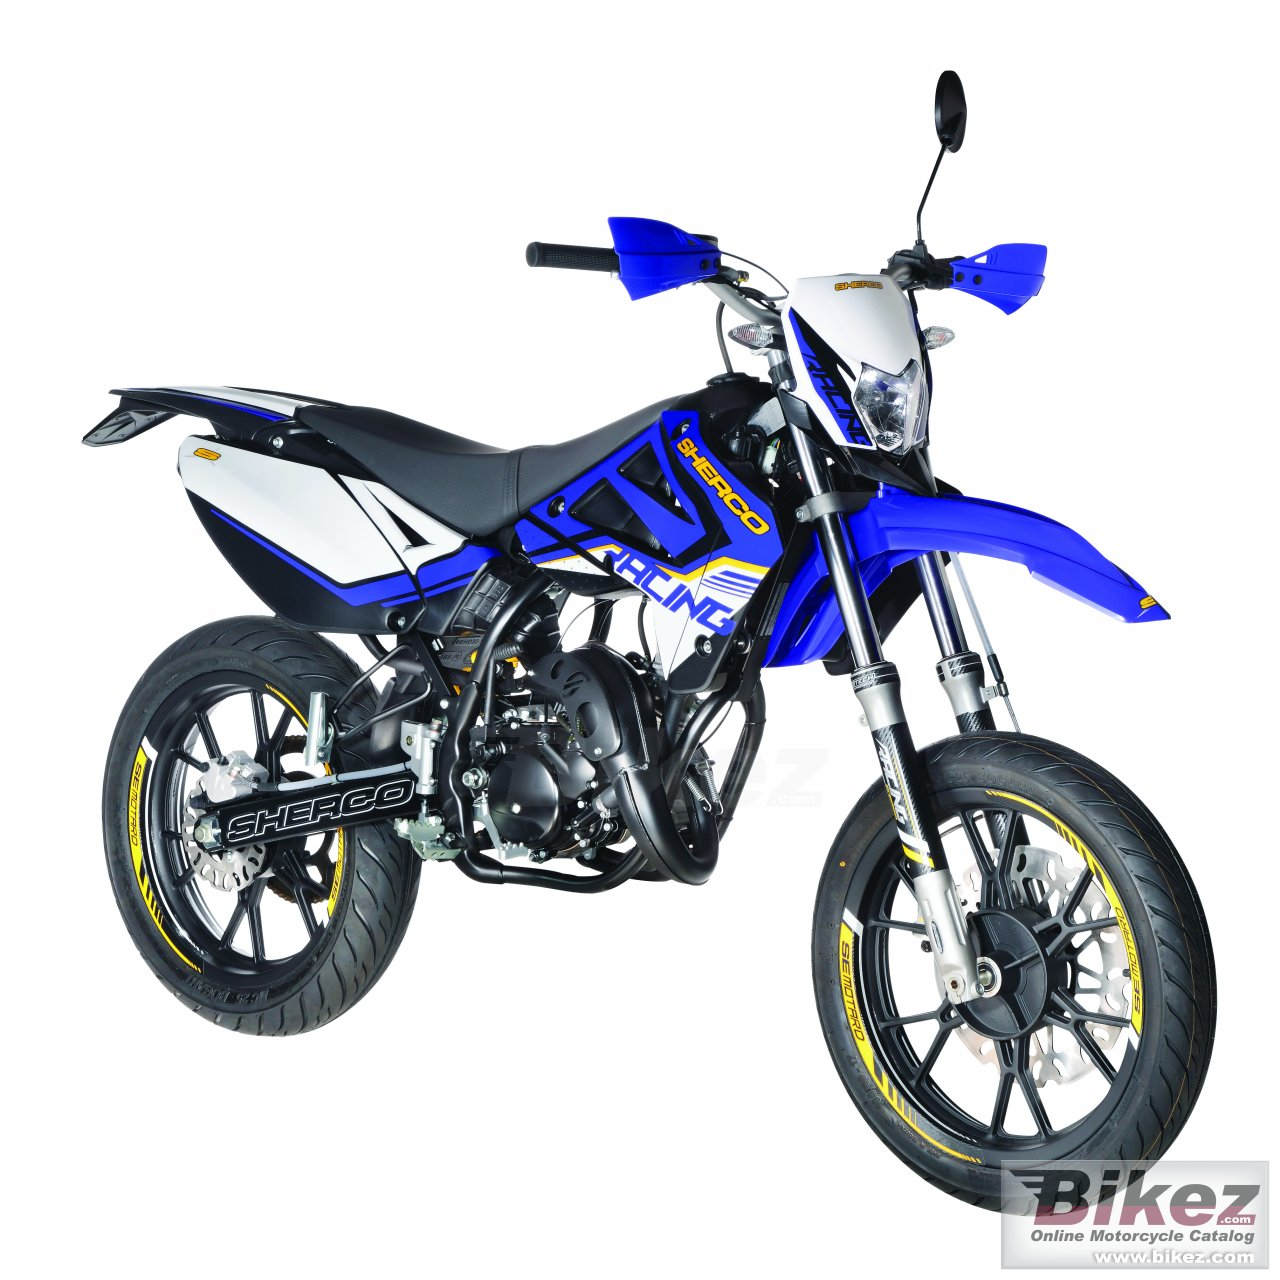 Big Sherco sm 50 supermoto picture and wallpaper from Bikez.com